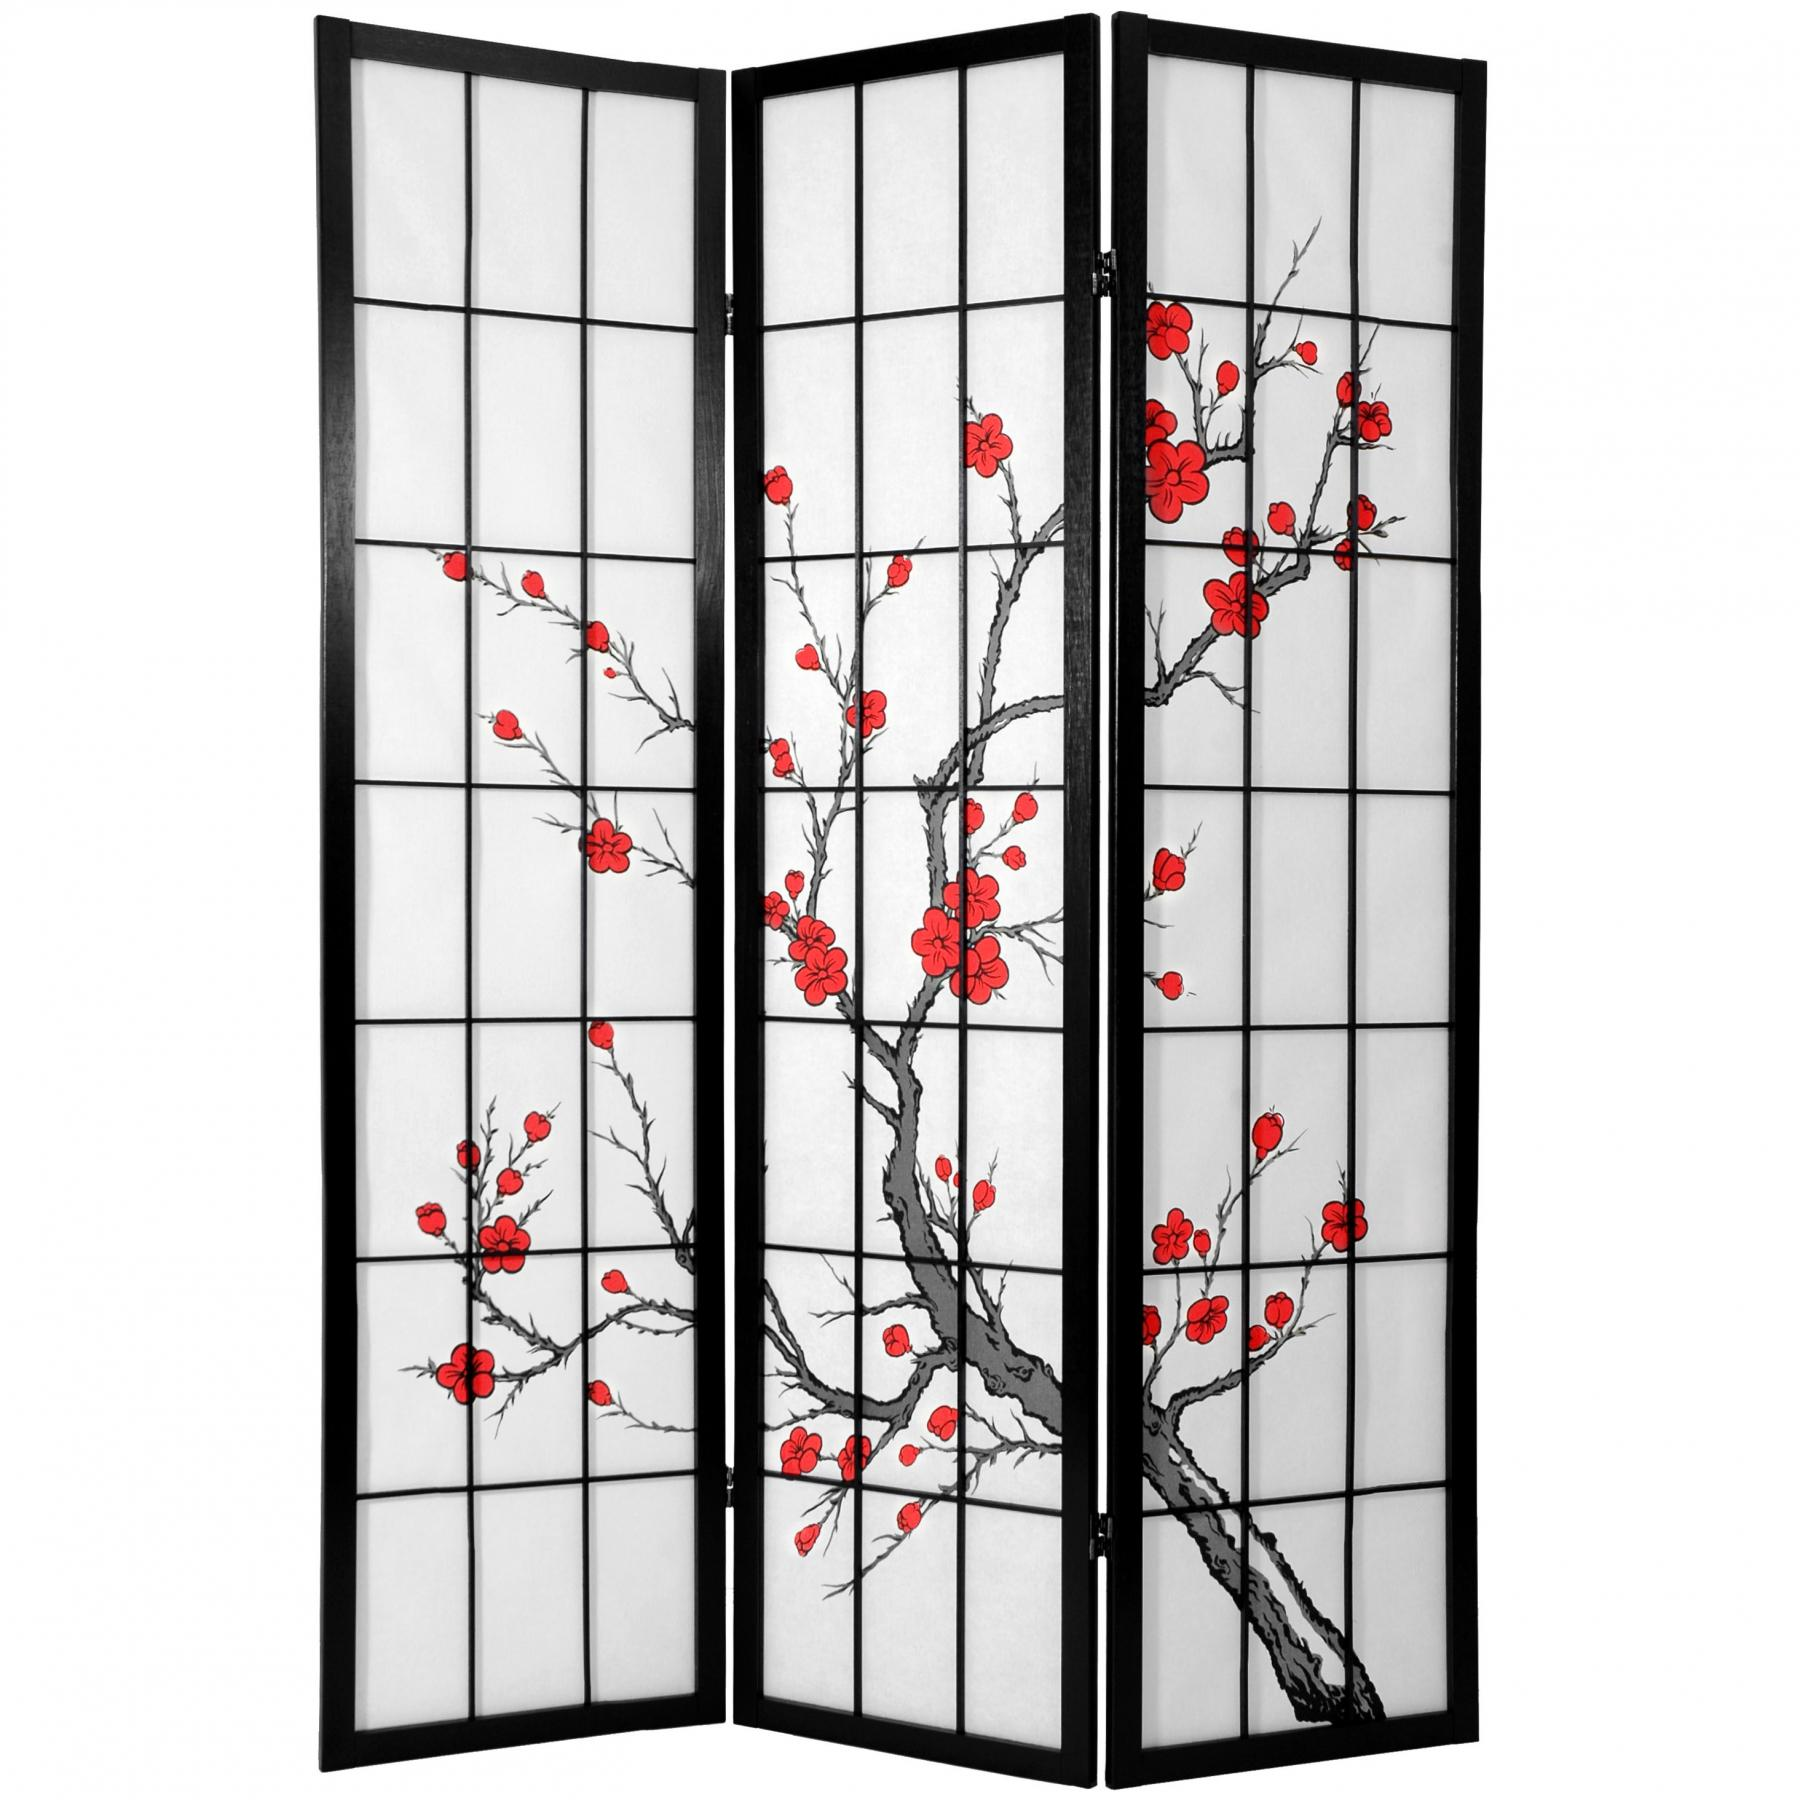 Great Room Separators Ikea for Any Room in Your Home: Curtain Room Dividers | Room Separators Ikea | Partitions To Separate Rooms